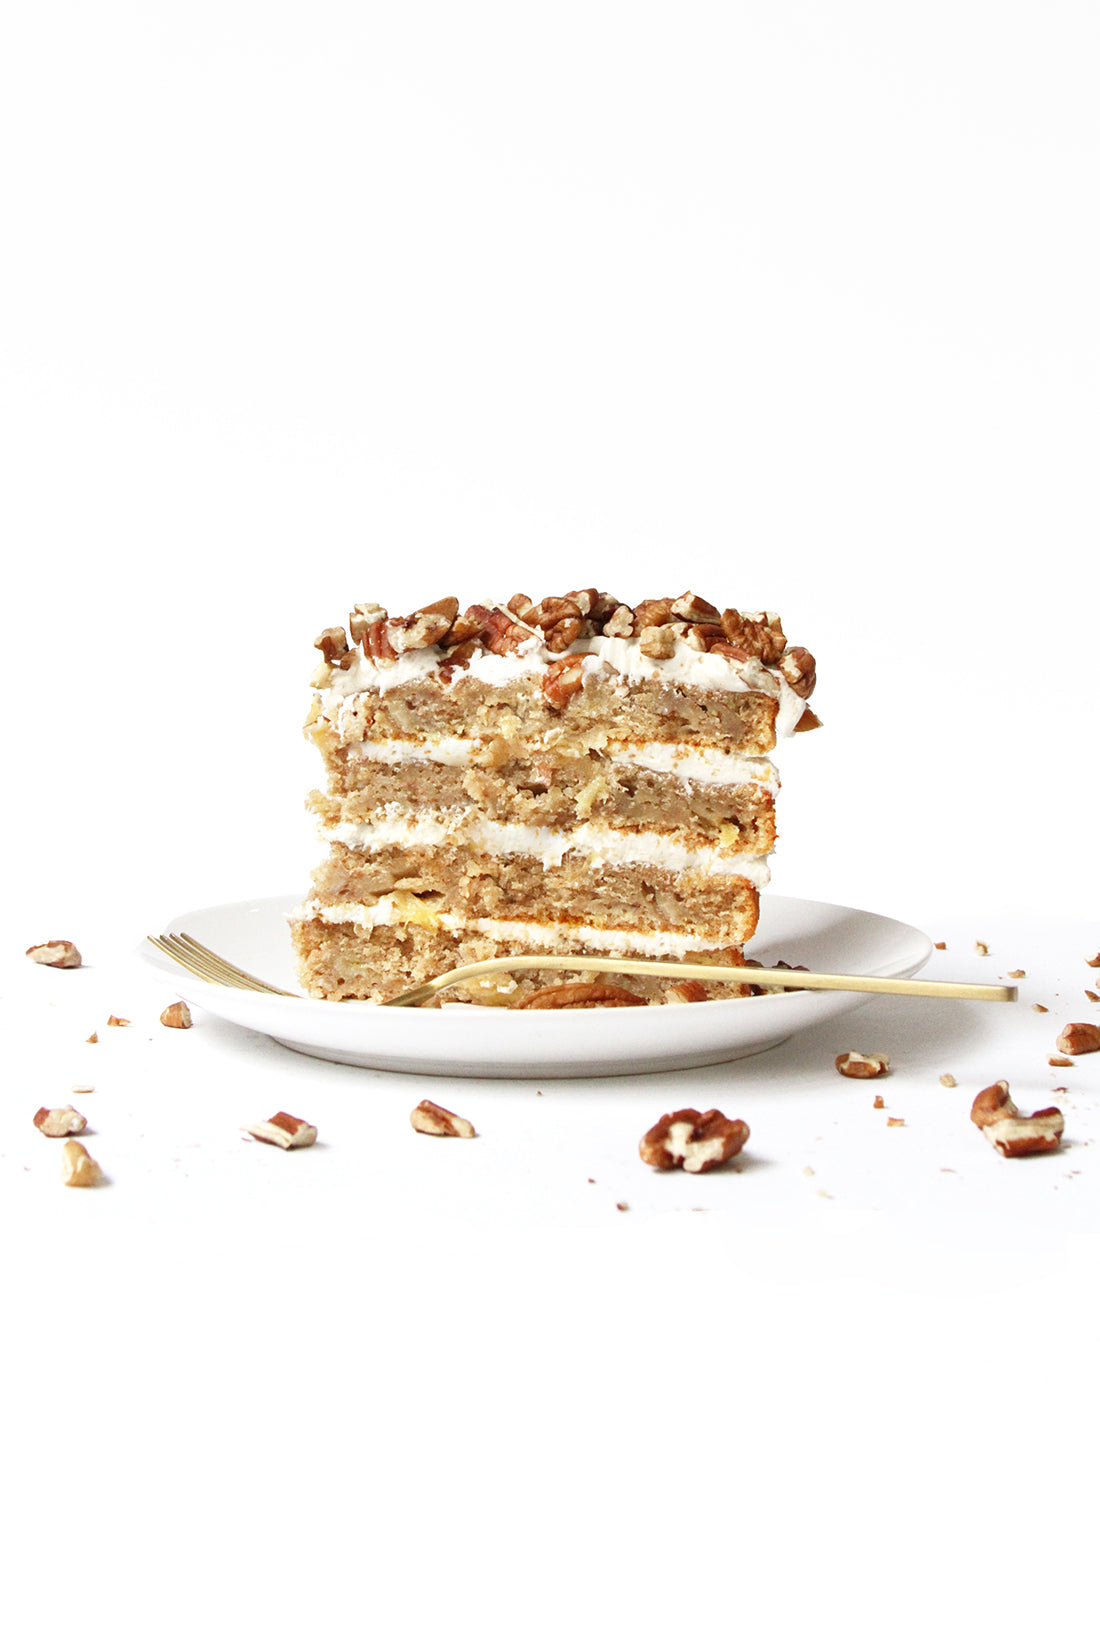 Image of side of a slice of Miss Jones Baking Co Classic Hummingbird Cake on a white plate